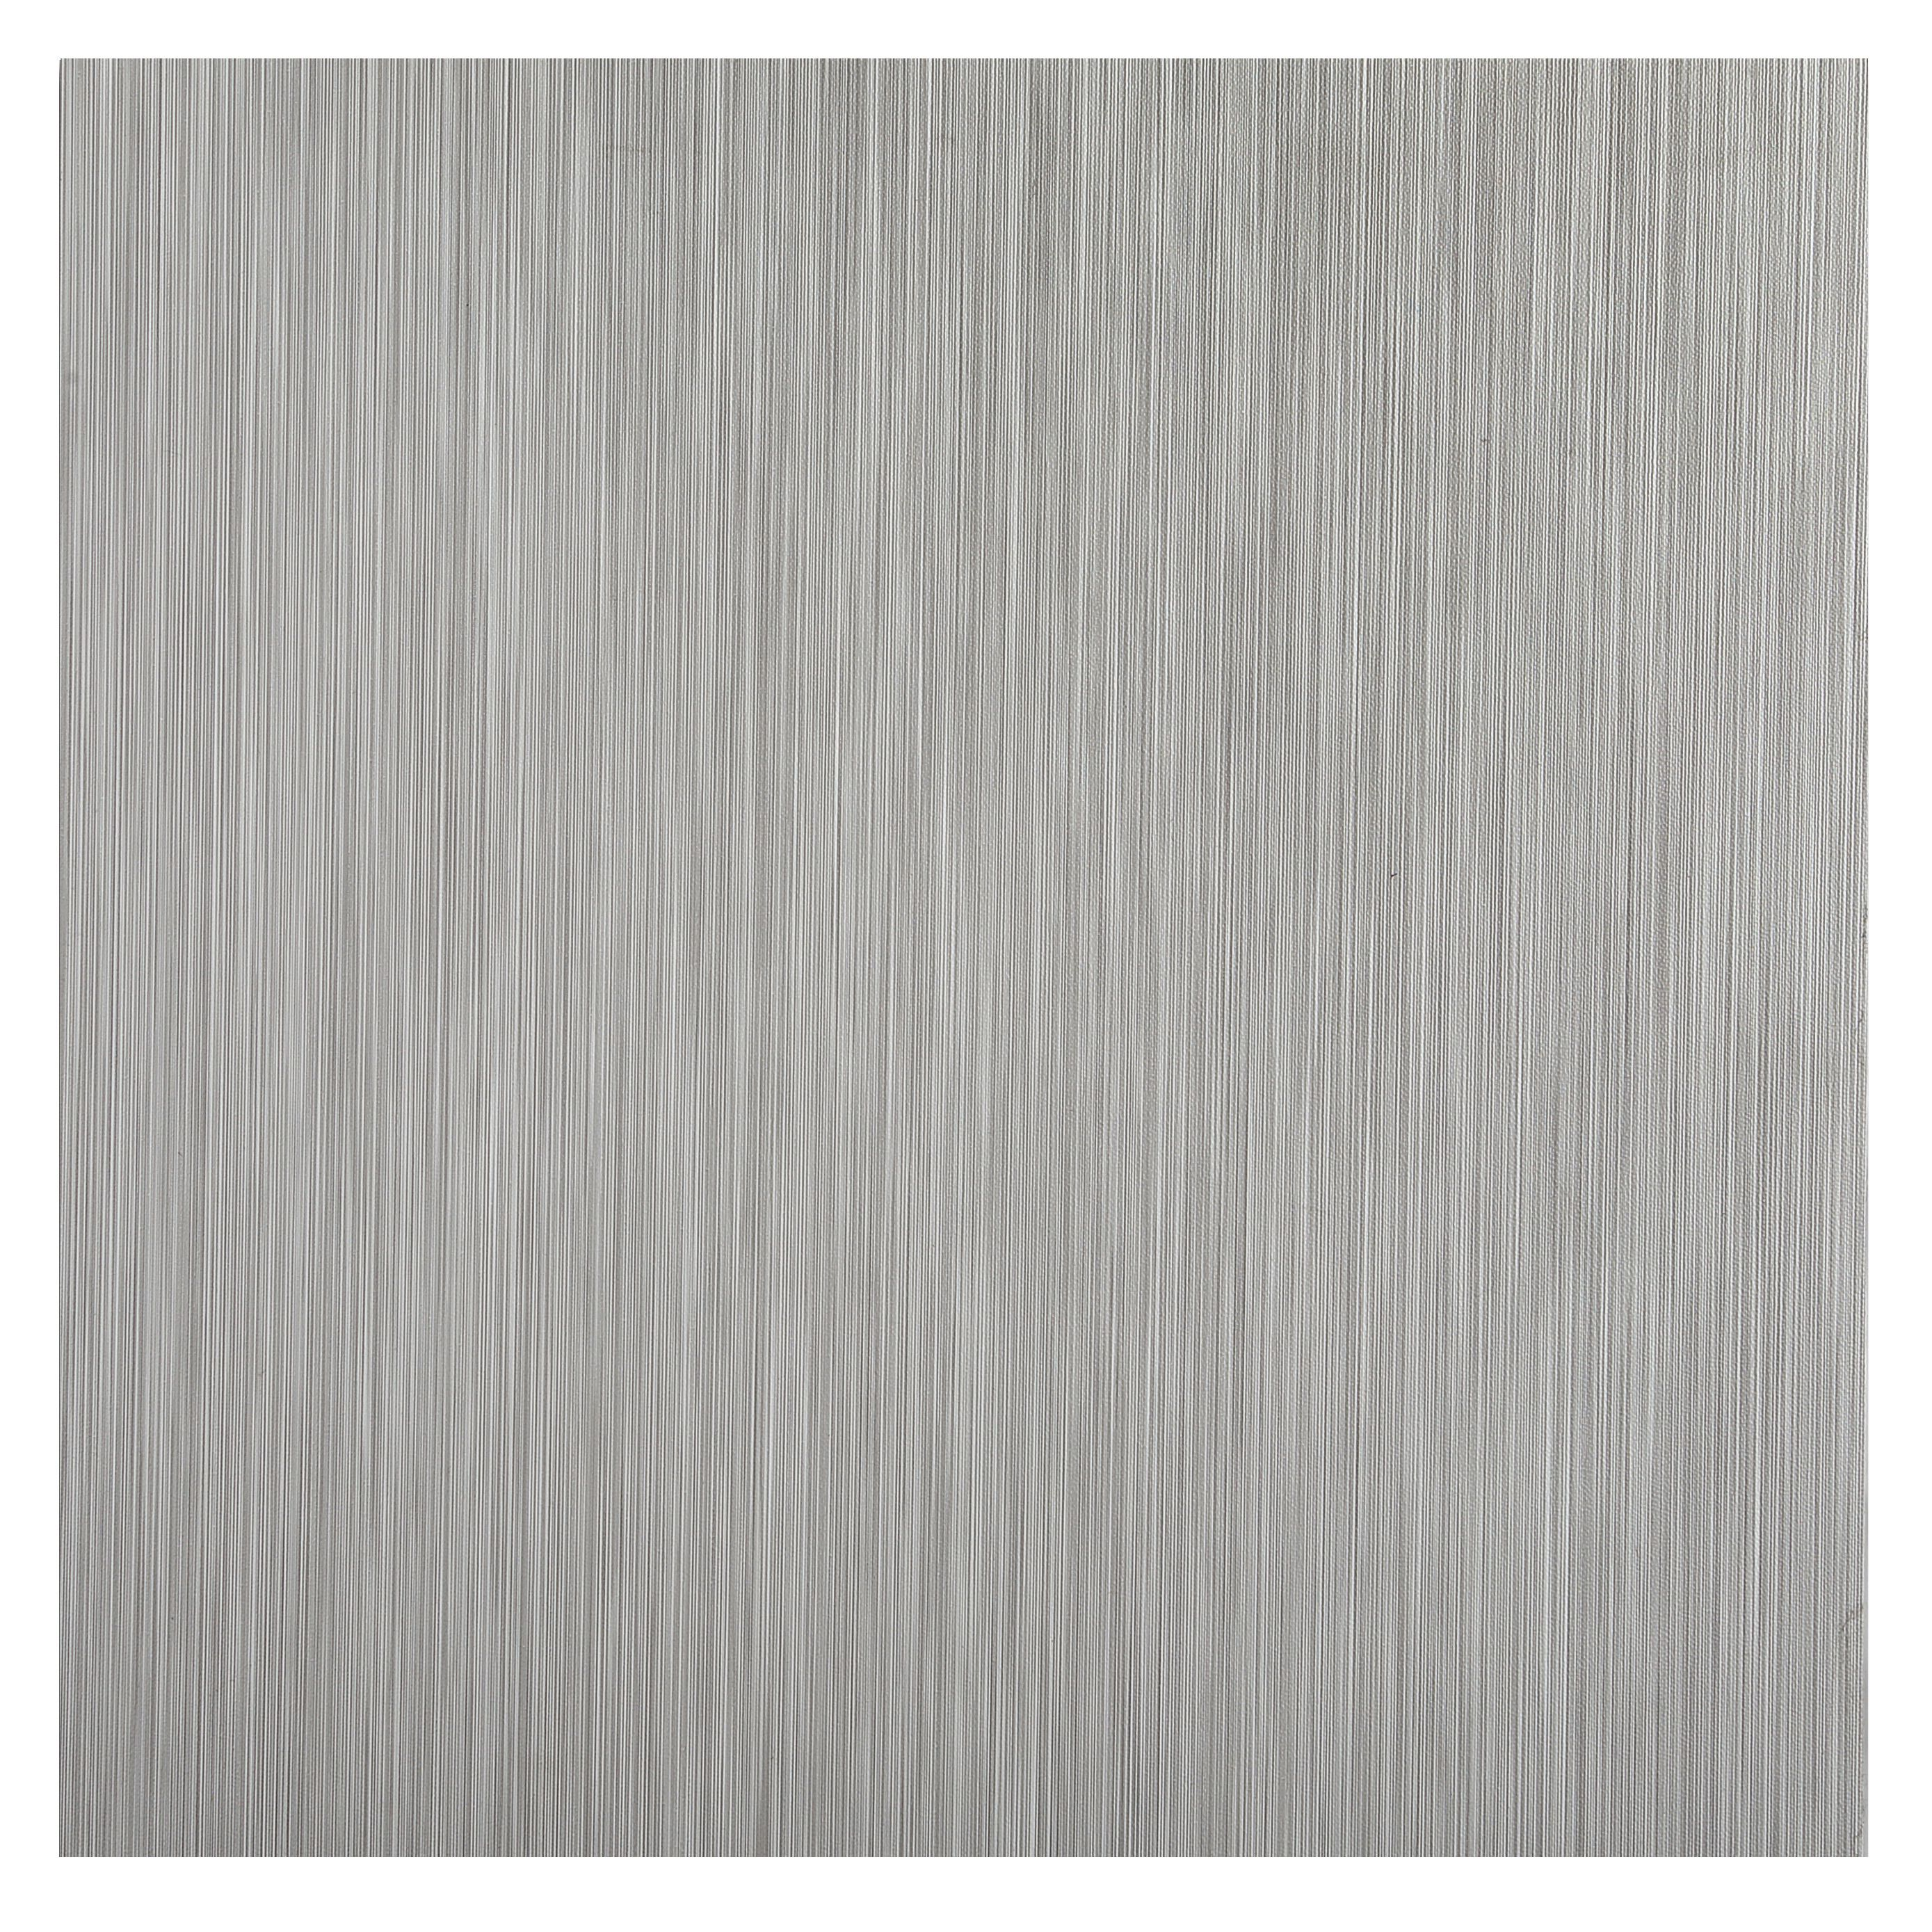 Colours Grey Brushed Self Adhesive Vinyl Tile 1.02m² Pack